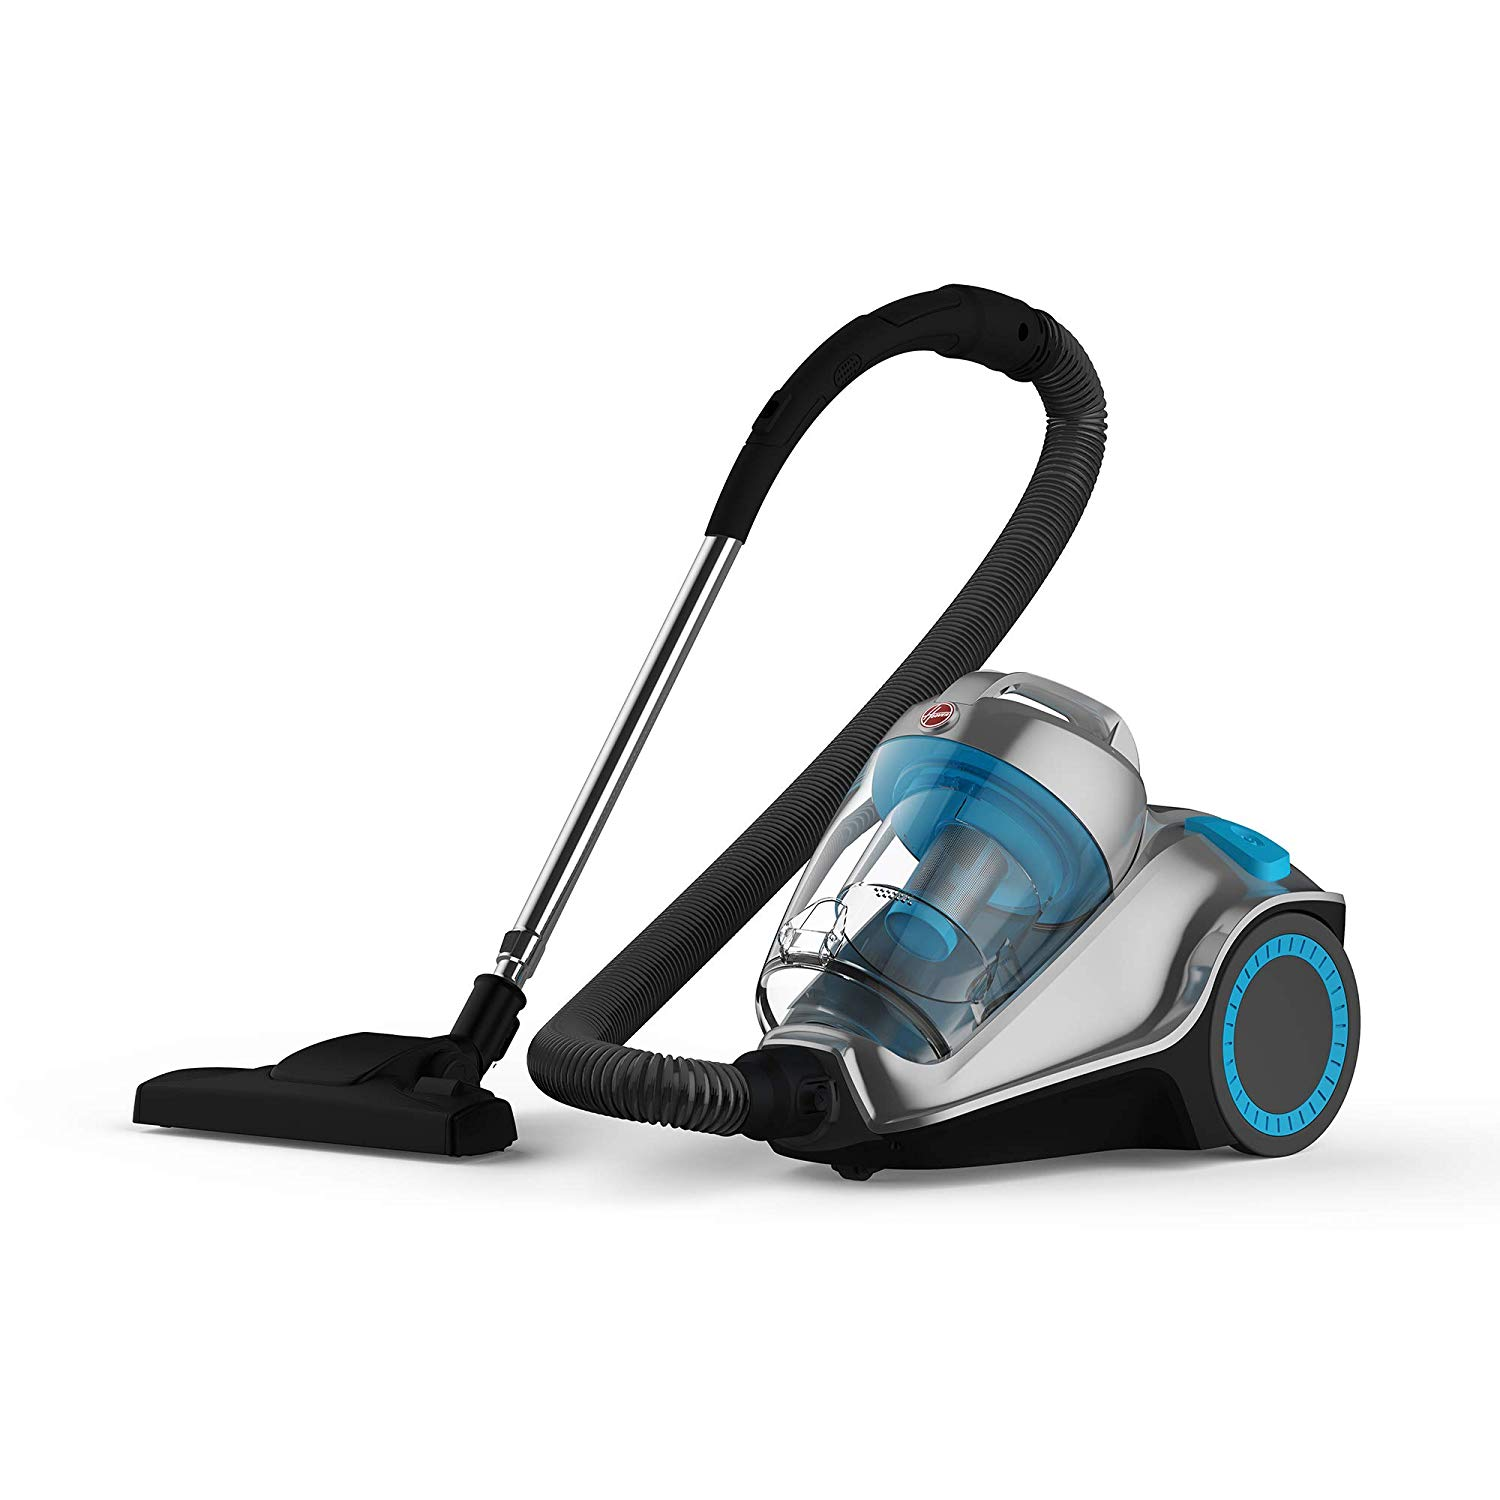 Hoover HC84-P7A-ME Power 7 Canister Vacuum Cleaner - Grey